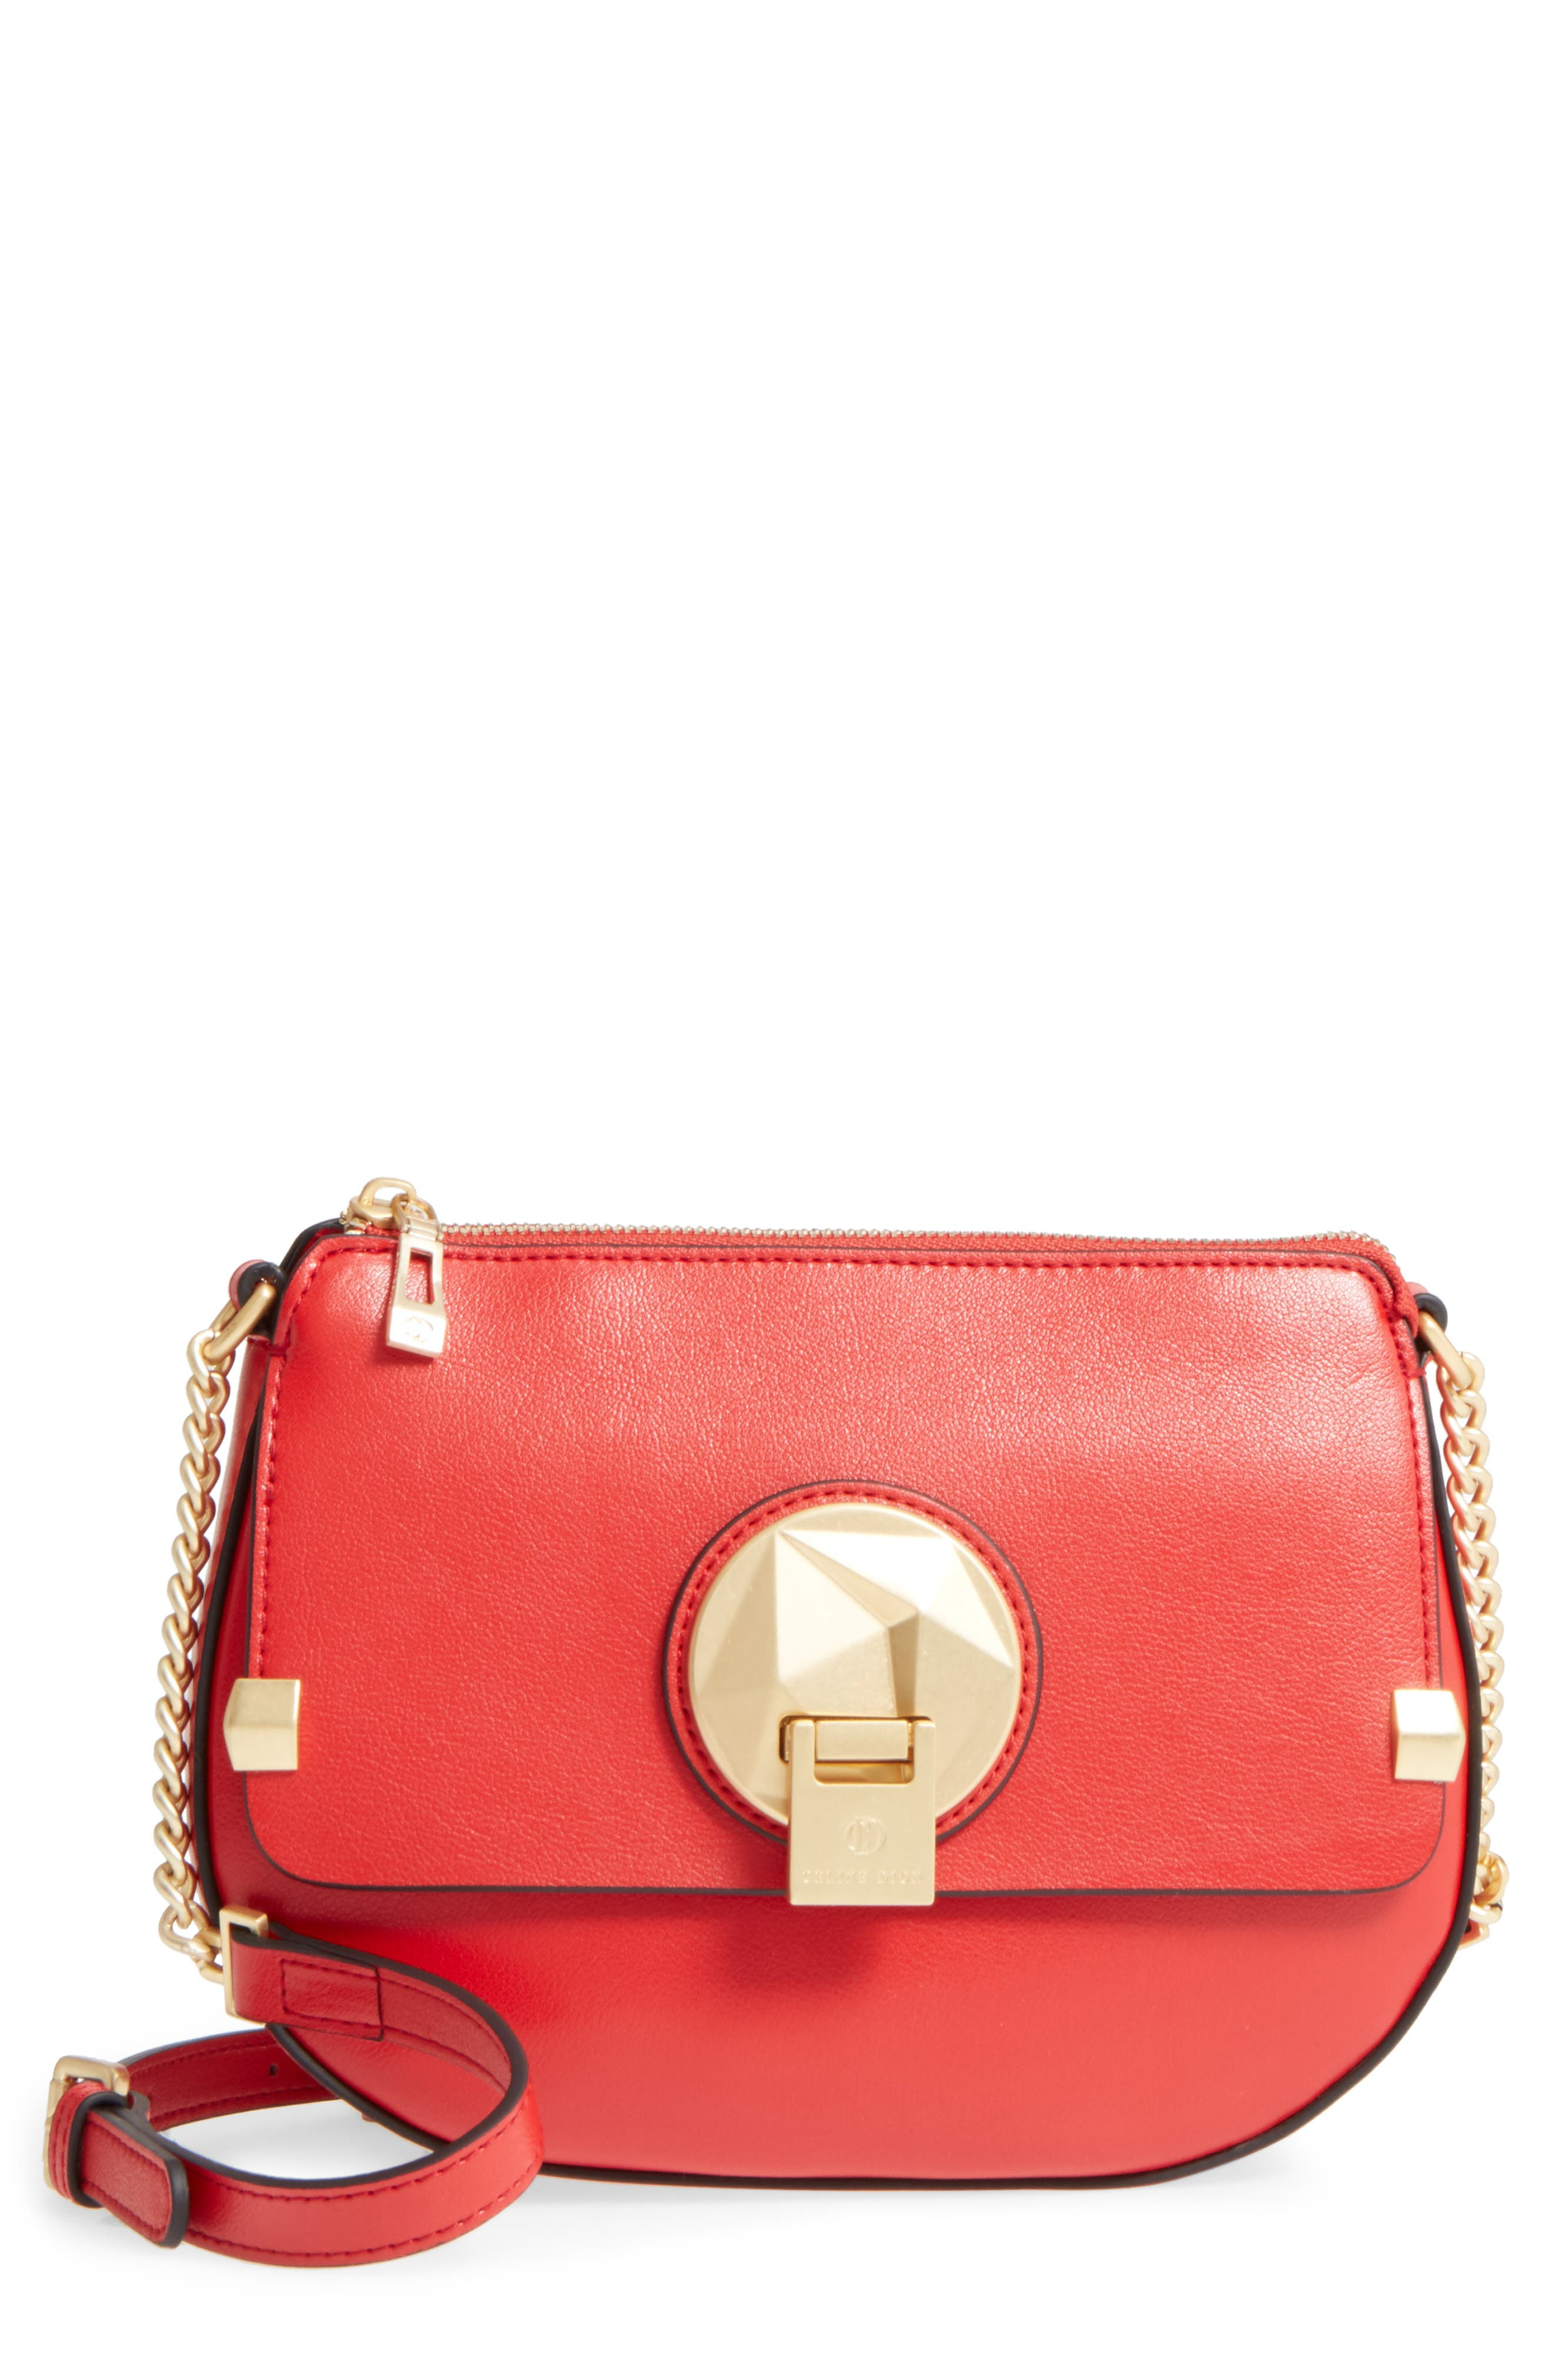 Céline Dion Octave Leather Crossbody Bag,                         Main,                         color, Red